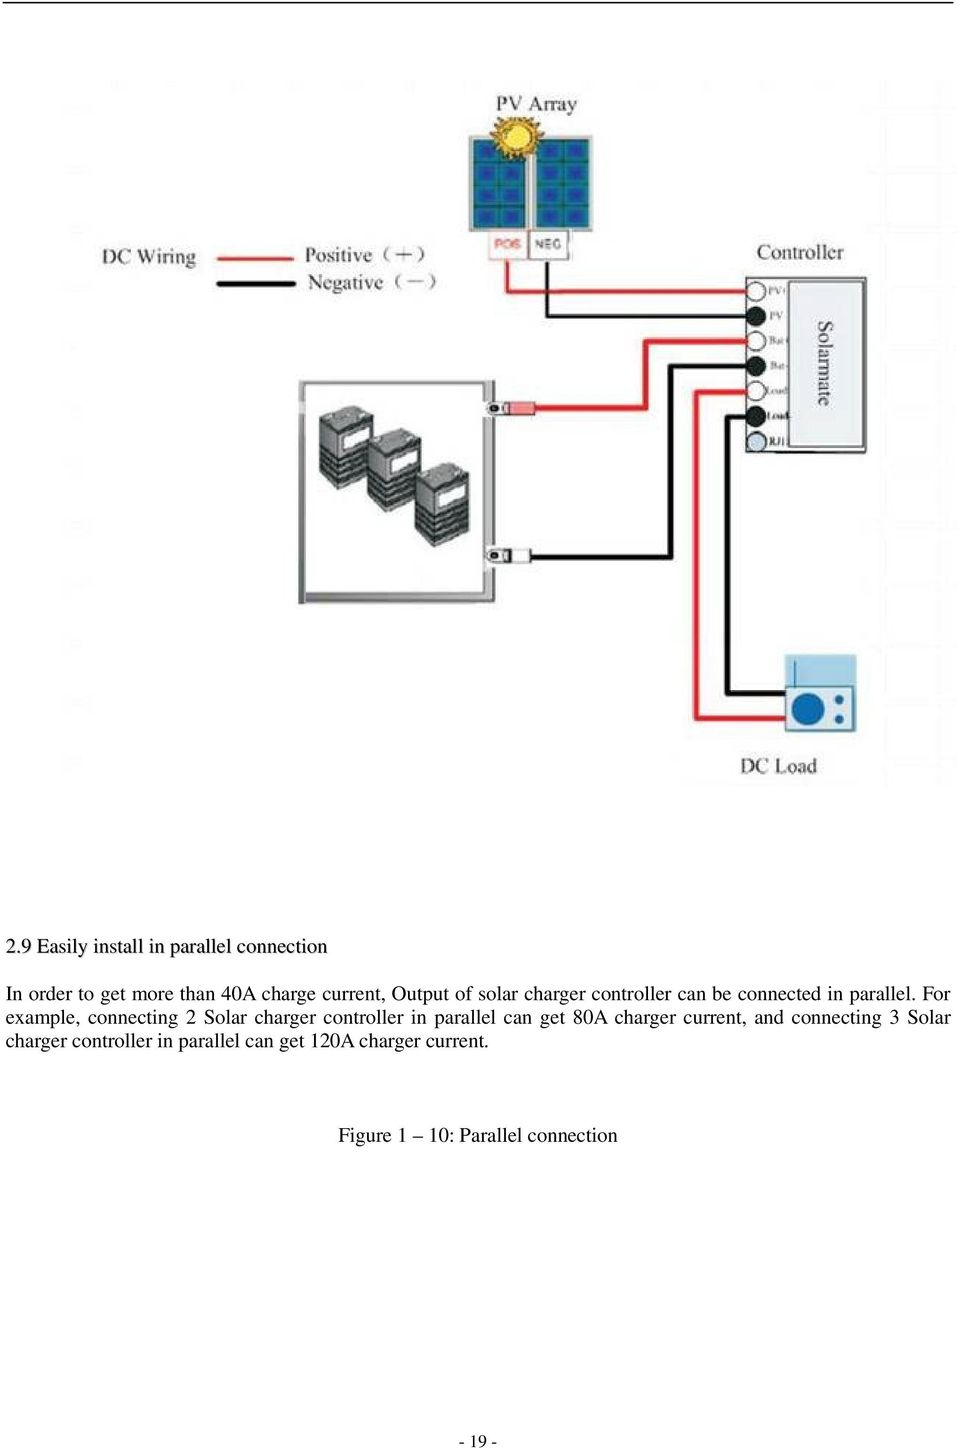 Solar Charger Controller User S Manual Pdf Charge Wiring Diagram For Example Connecting 2 In Parallel Can Get 80a Current